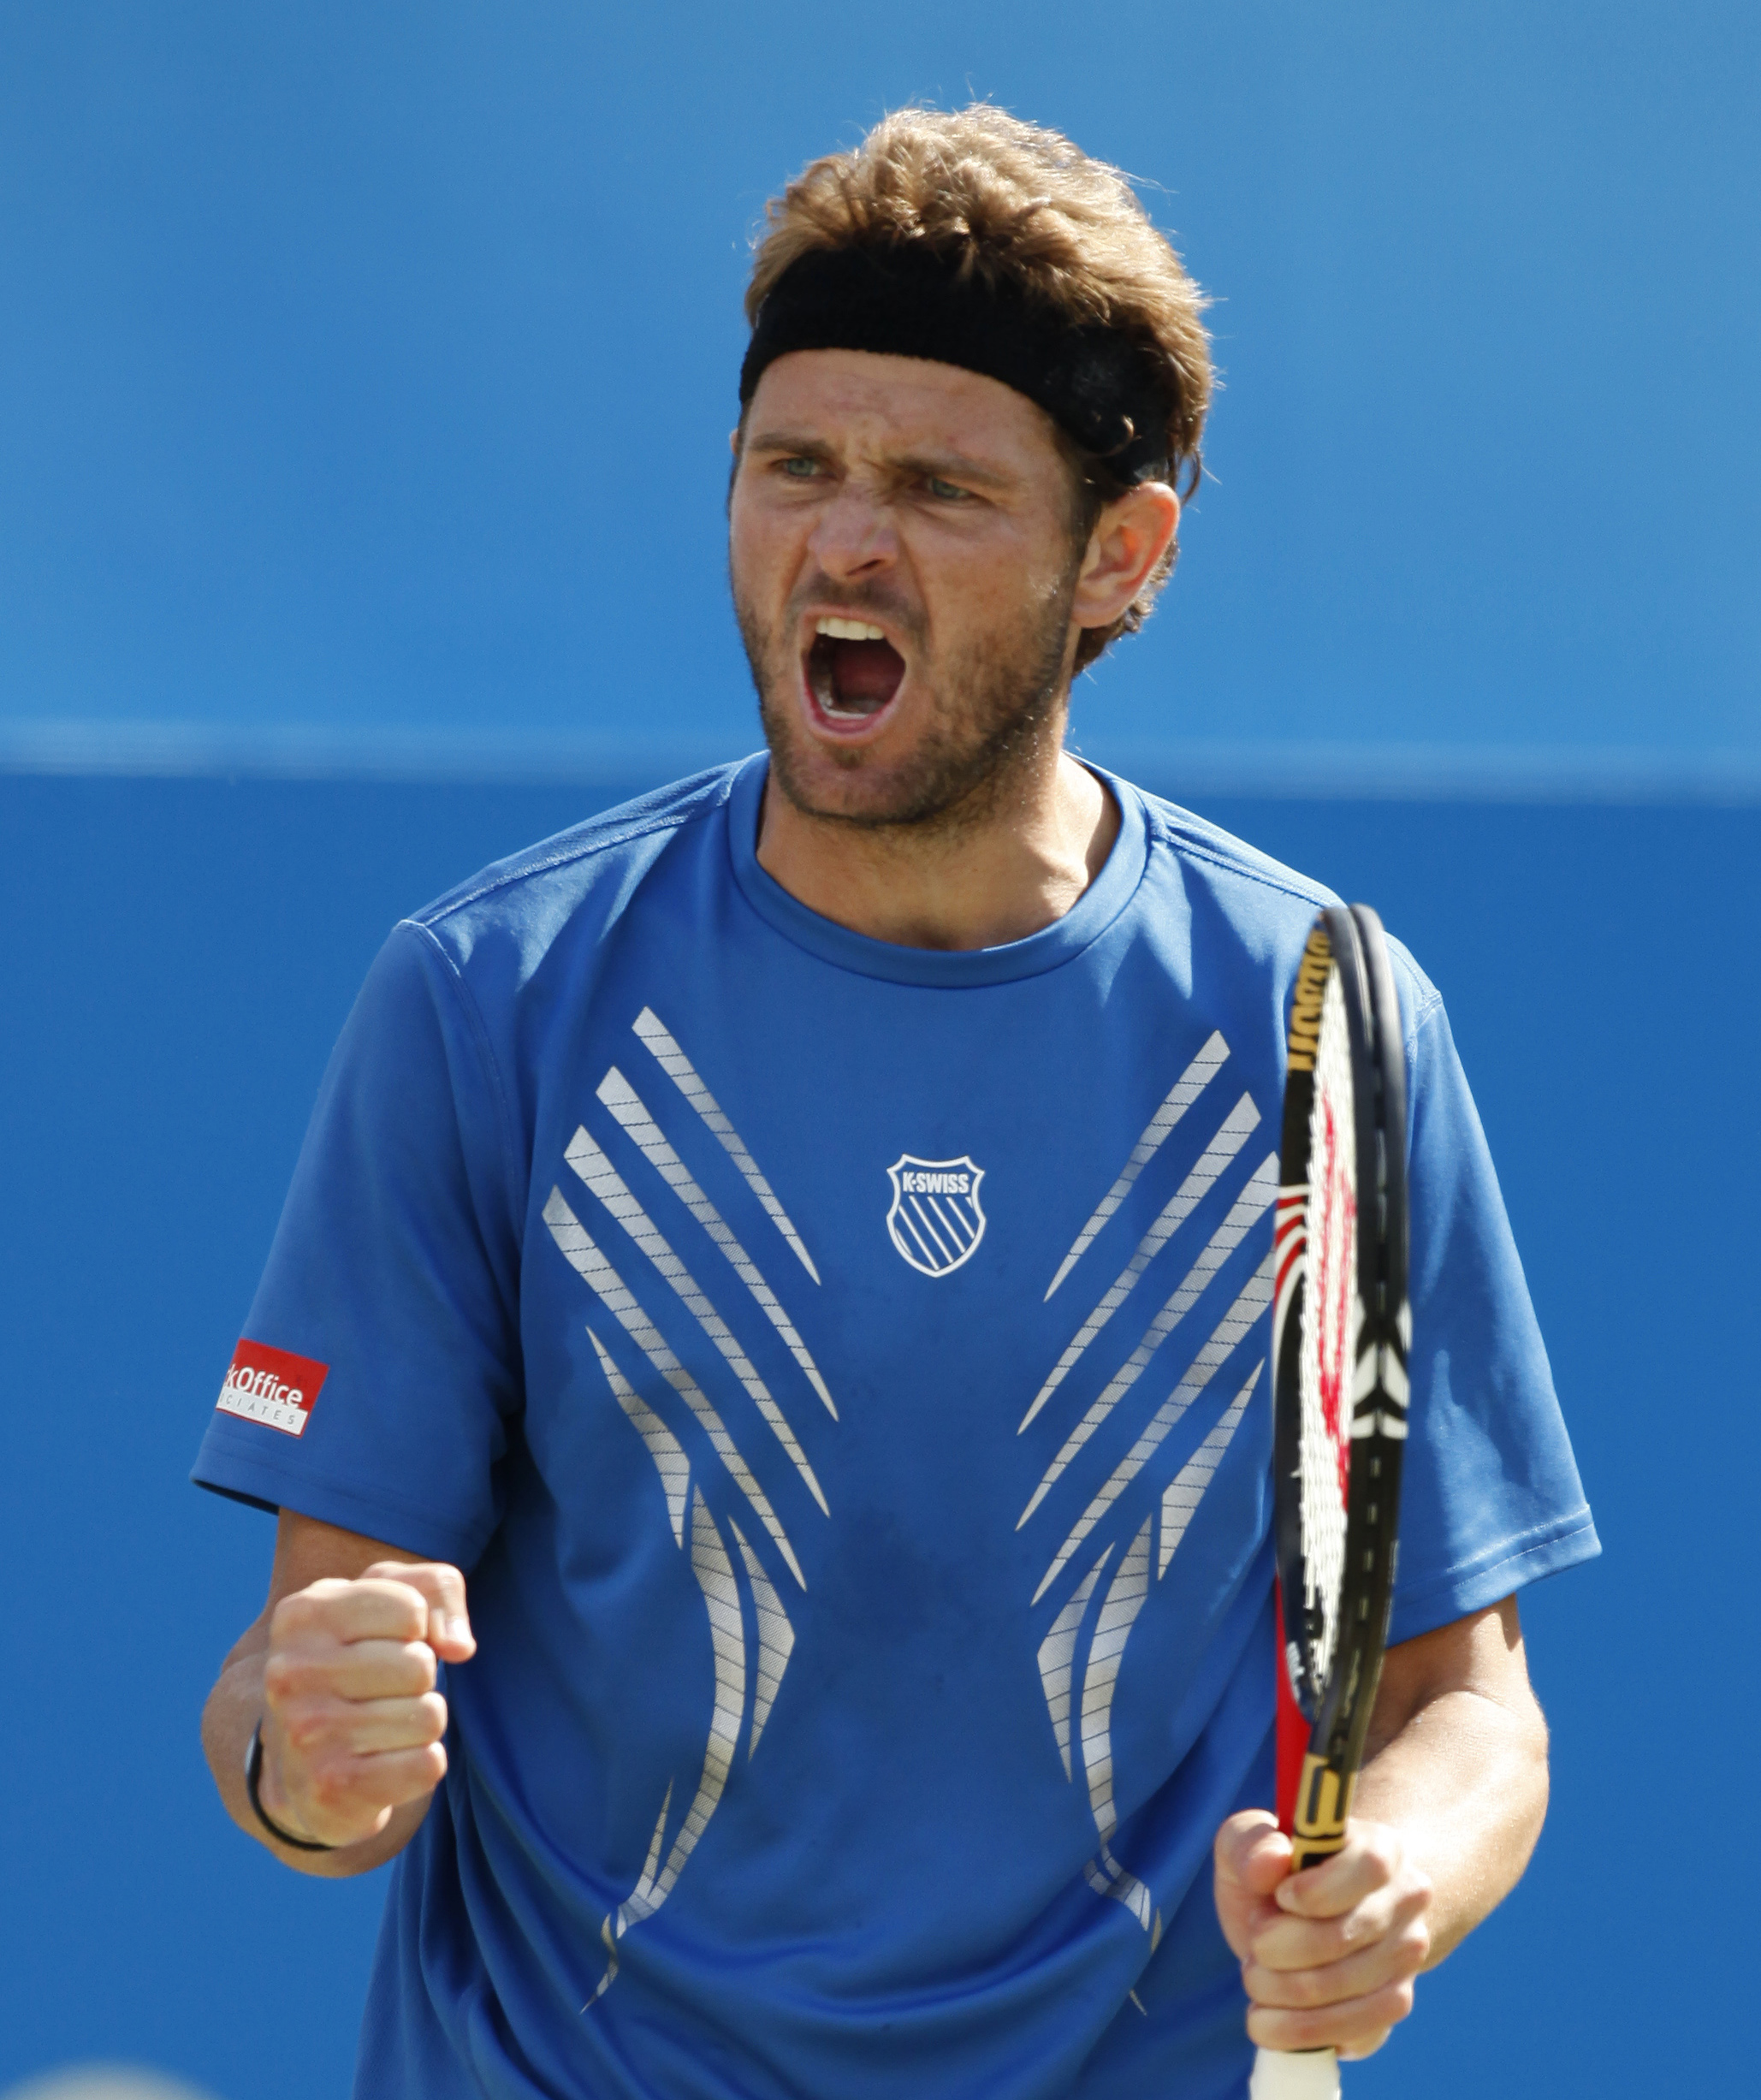 Mardy Fish, Getty Images